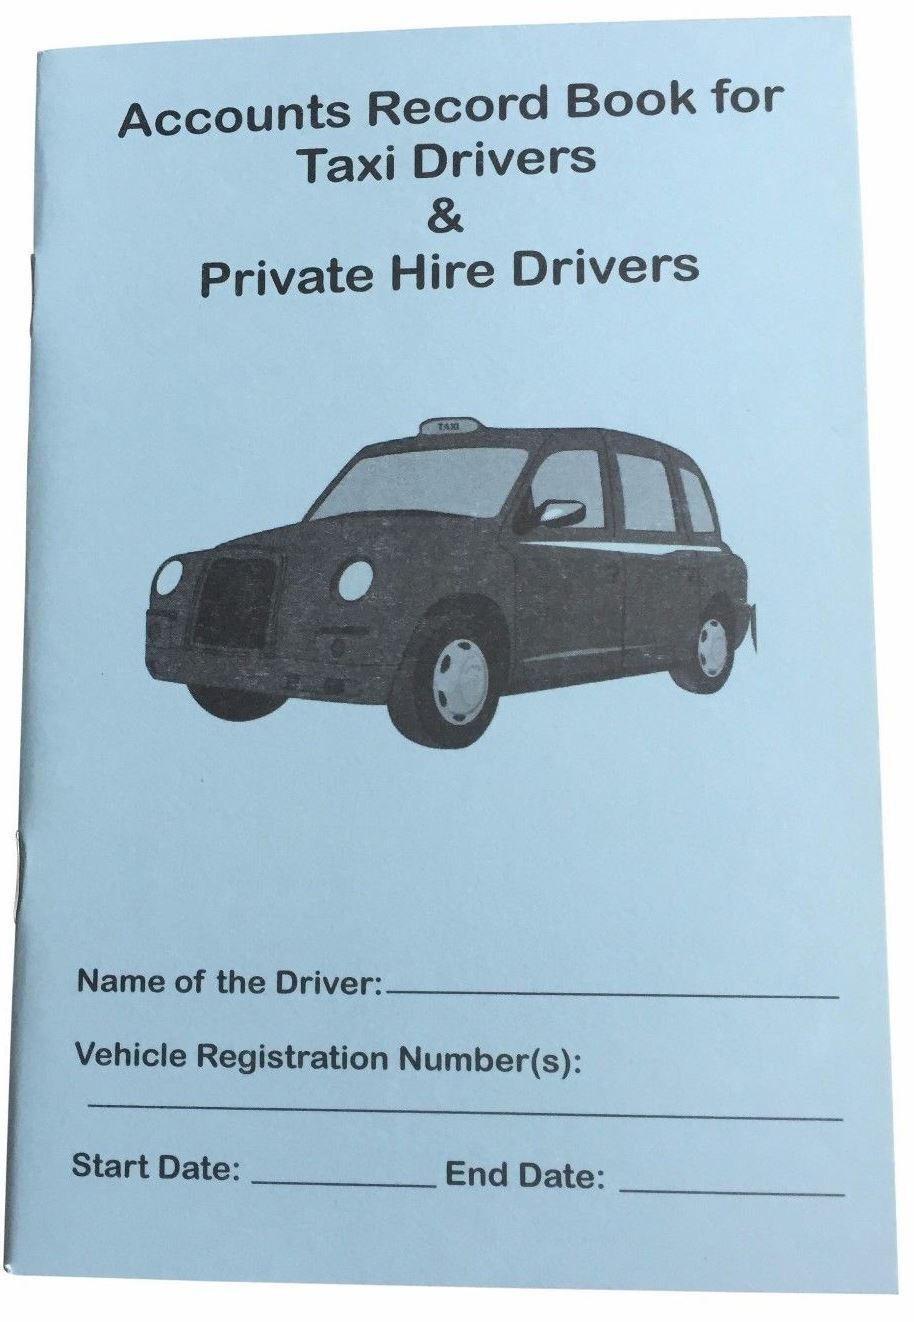 Car Parts - Weekly Accounts Record Book for Taxi, Minicab & Hackney Carriage for Tax HMRC